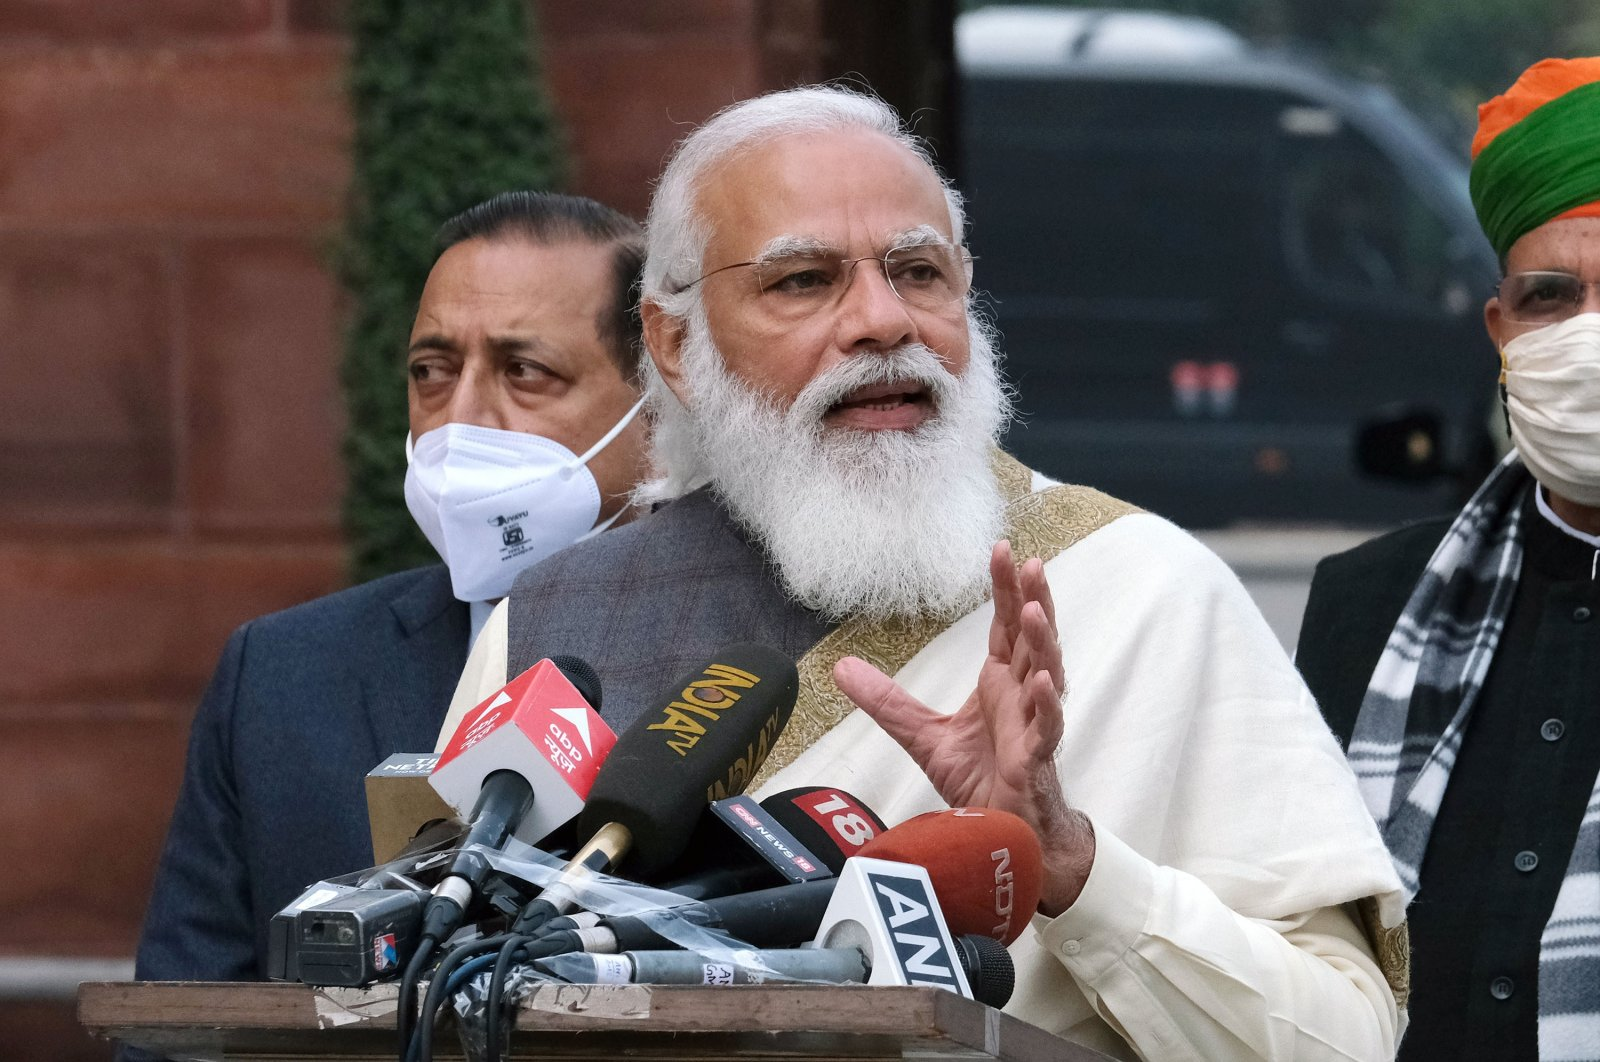 Narendra Modi, India's prime minister, during a news conference at Parliament House on the opening day of the Budget Session in New Delhi, India, Jan. 29, 2021. (Bloomberg via Getty Images)